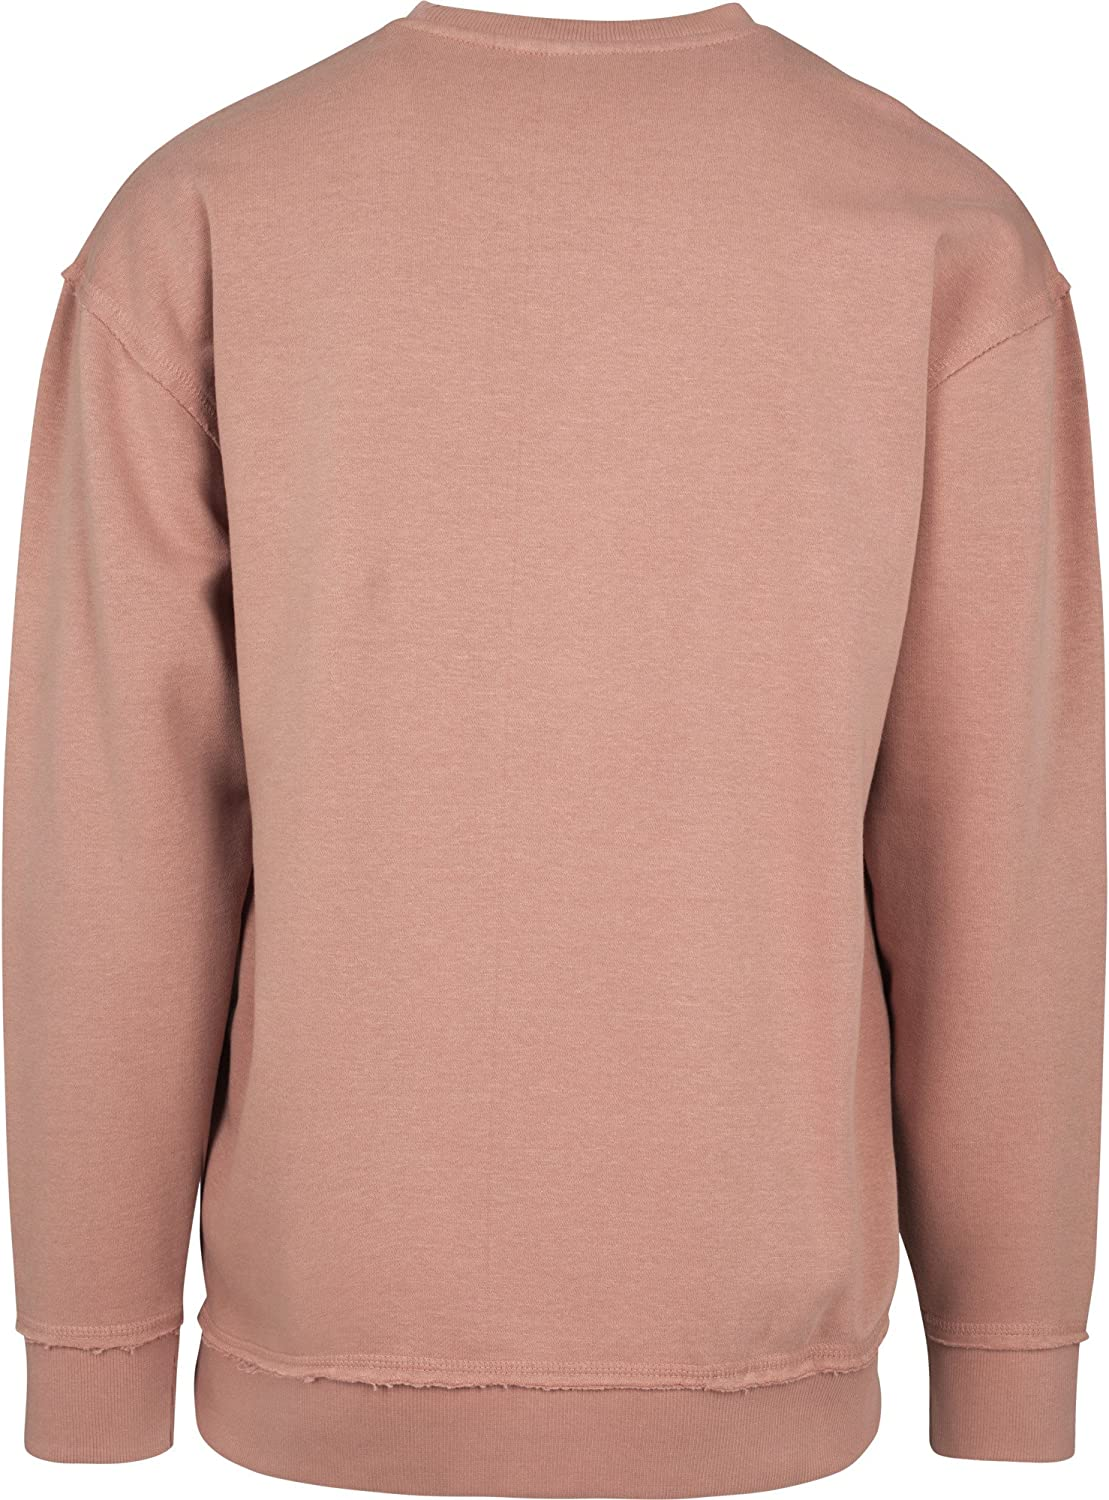 Oversized Crewneck with Open Edges Urban Classics